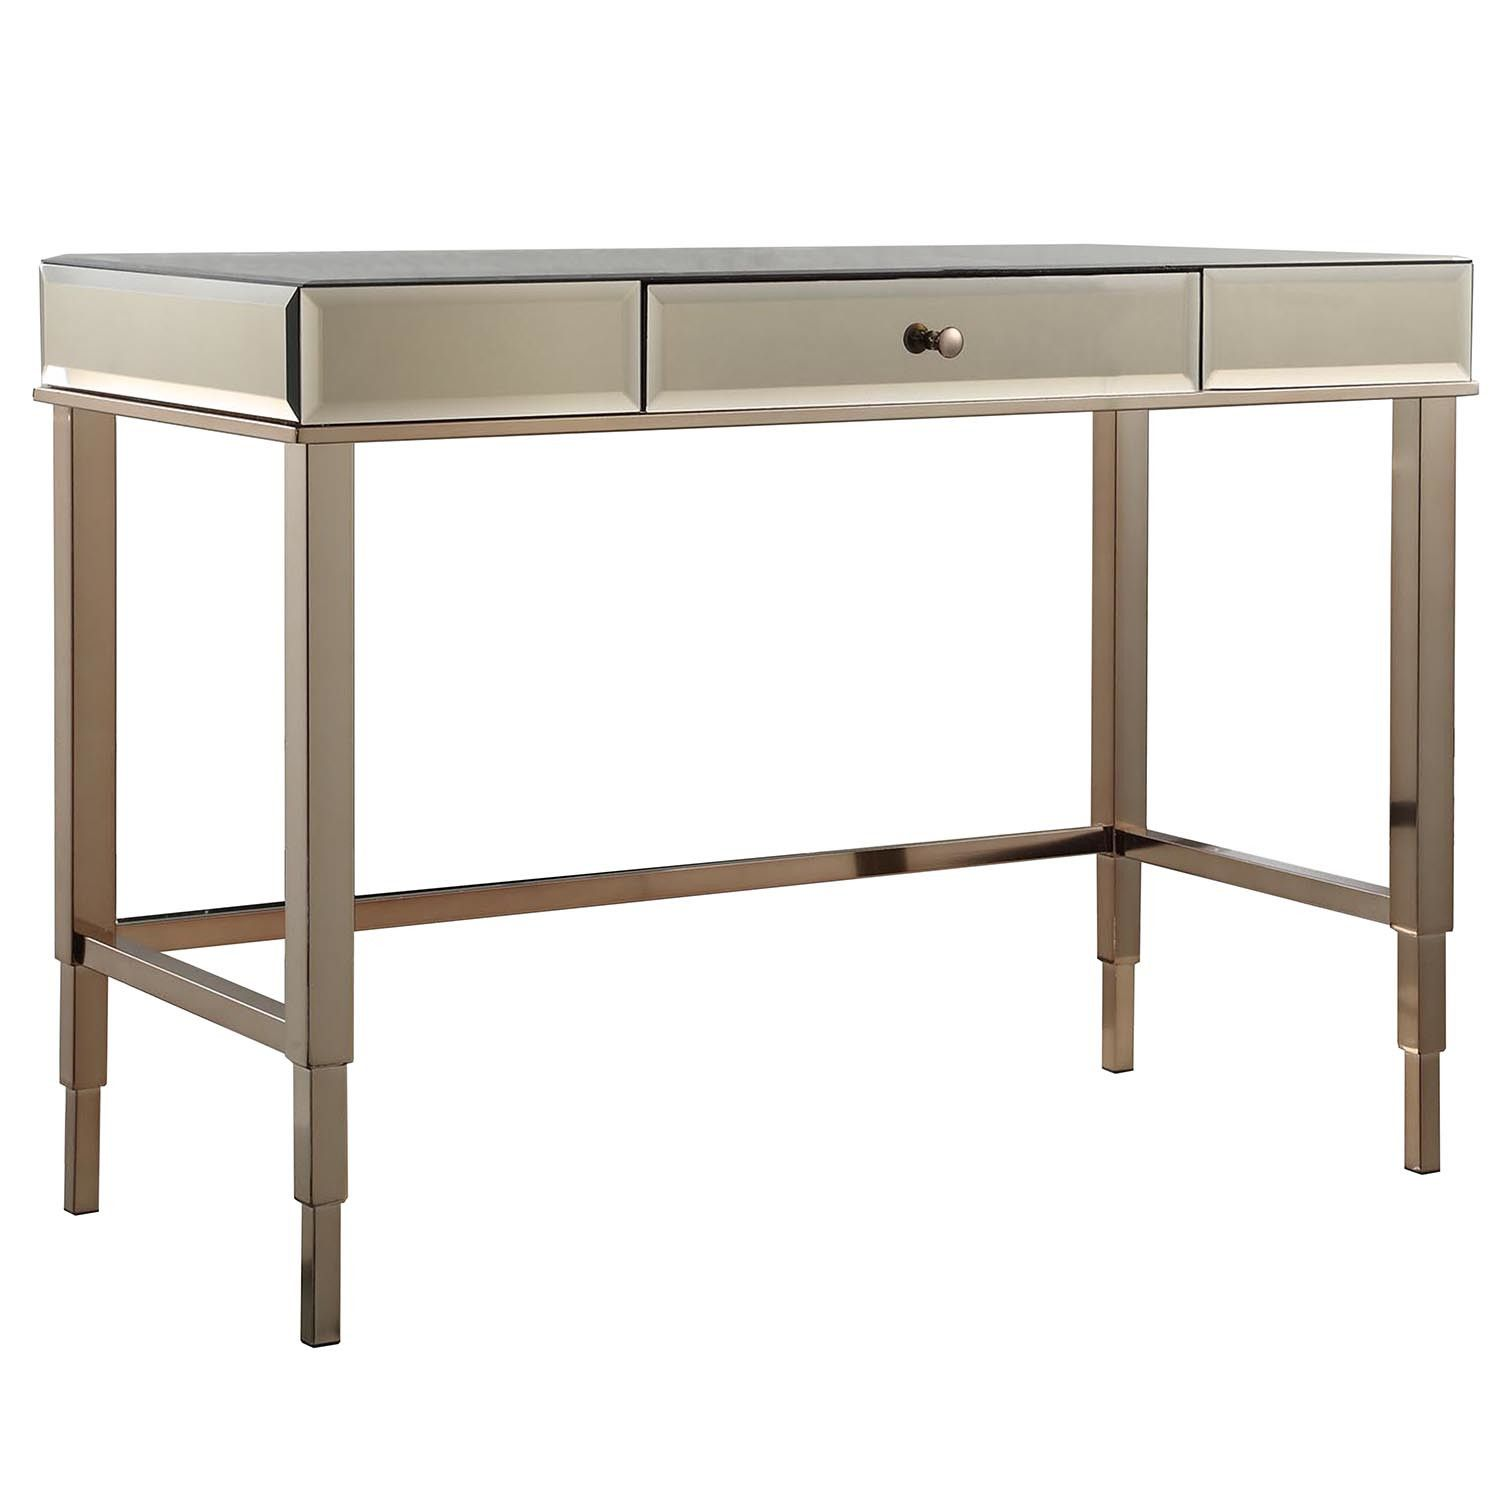 Braelyn Mirrored Writing Desk Desk Mirror Brass Desk Furniture